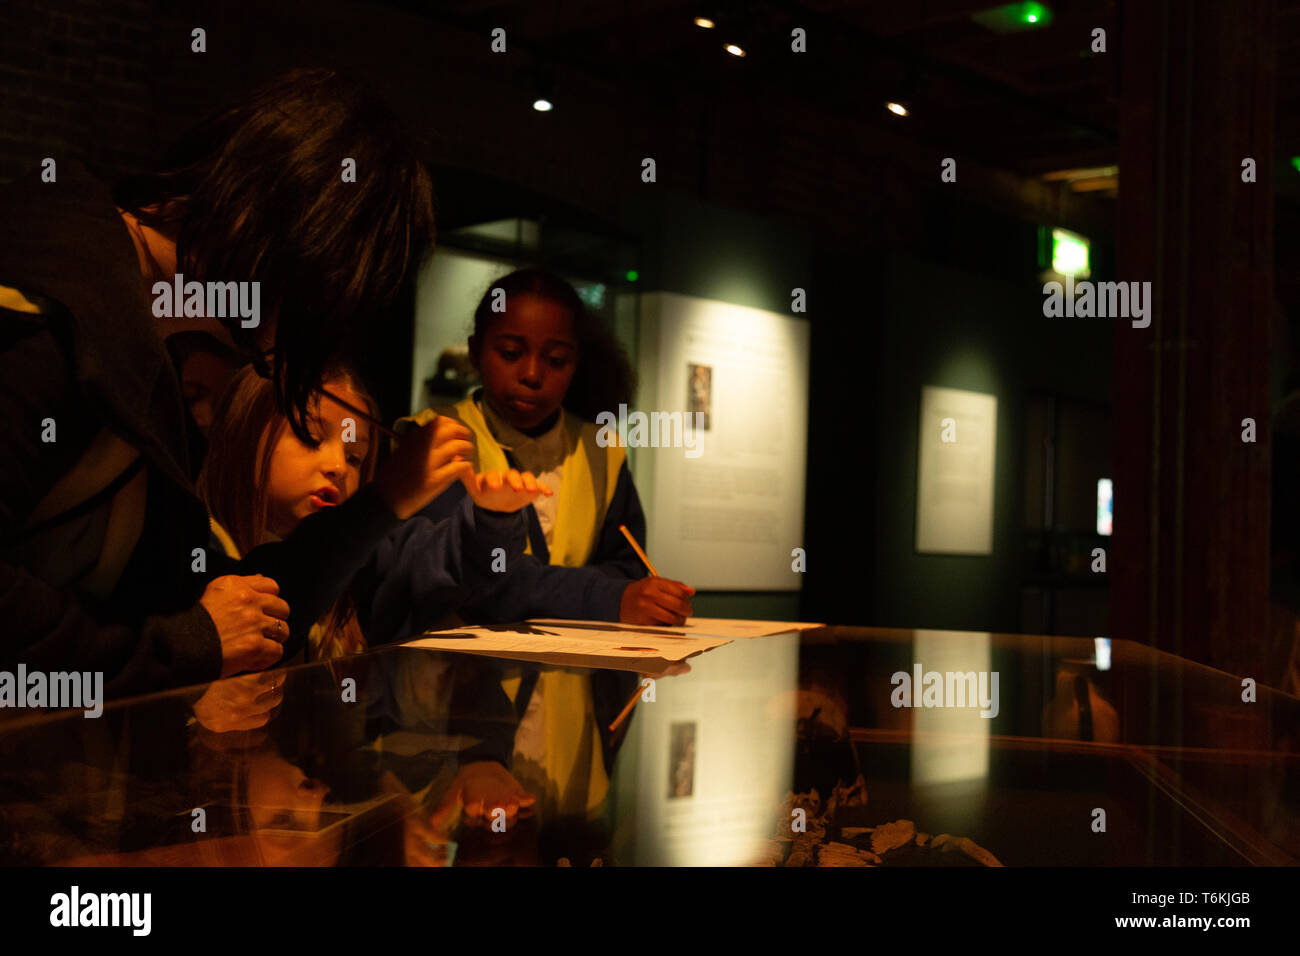 Children during the visit at the Roman Dead exhibition at the Museum of London Docklands. - Stock Image